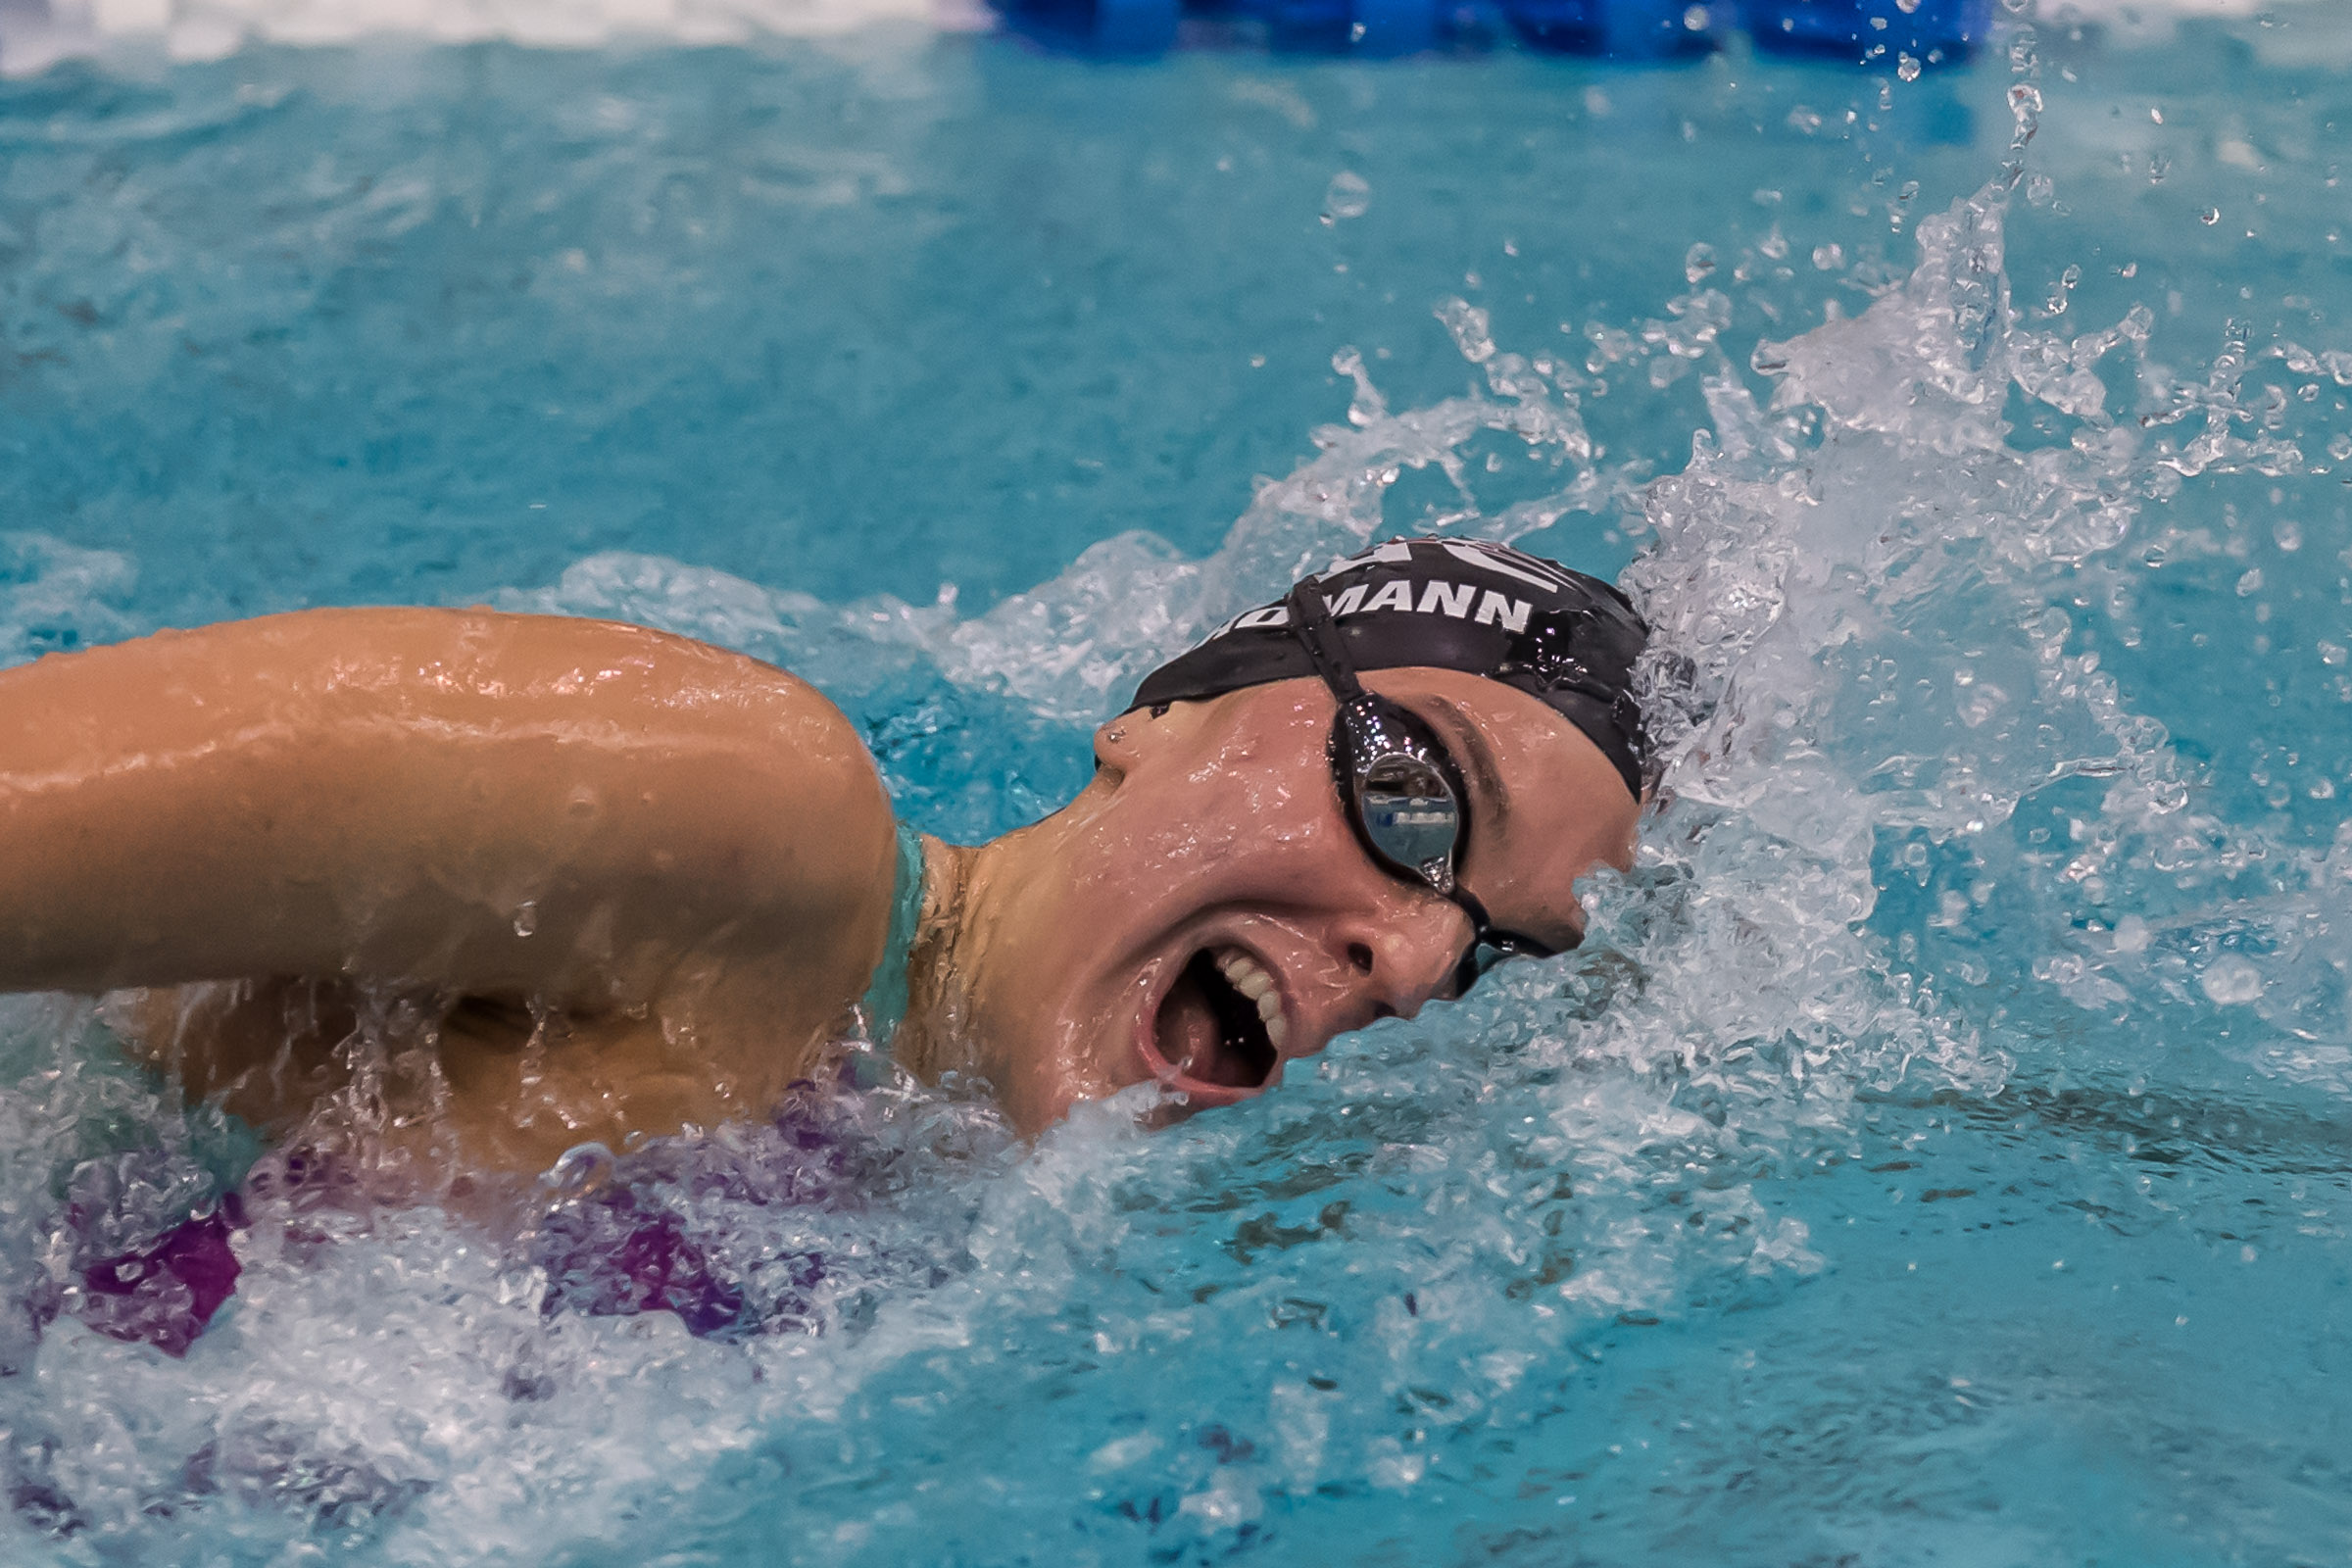 Lucie Nordmann Among Top Seeds At Day 2 Prelims Of Speedo Juniors